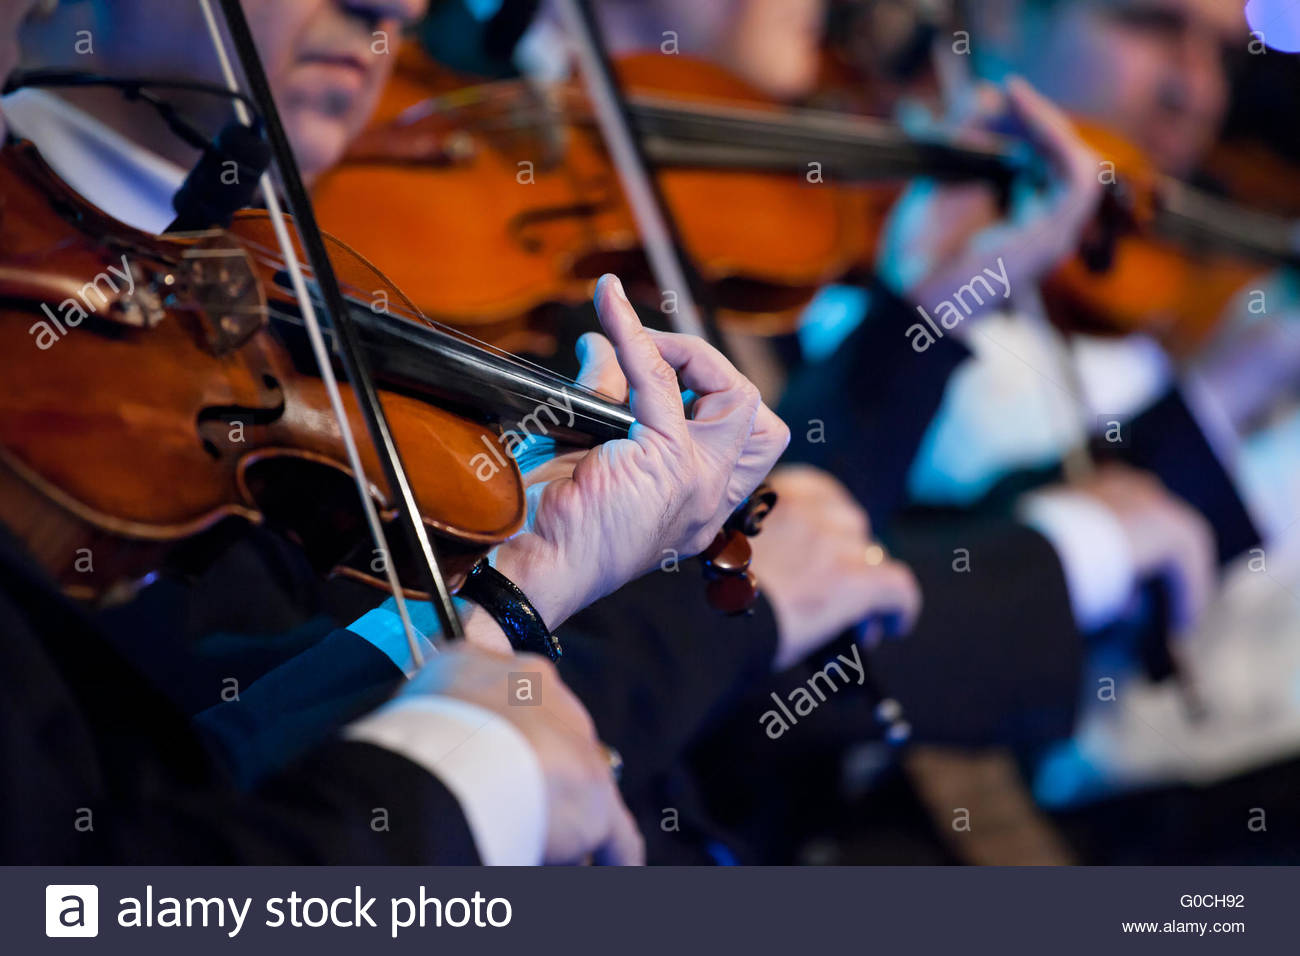 Violin players close up during a classical concert - Stock Image